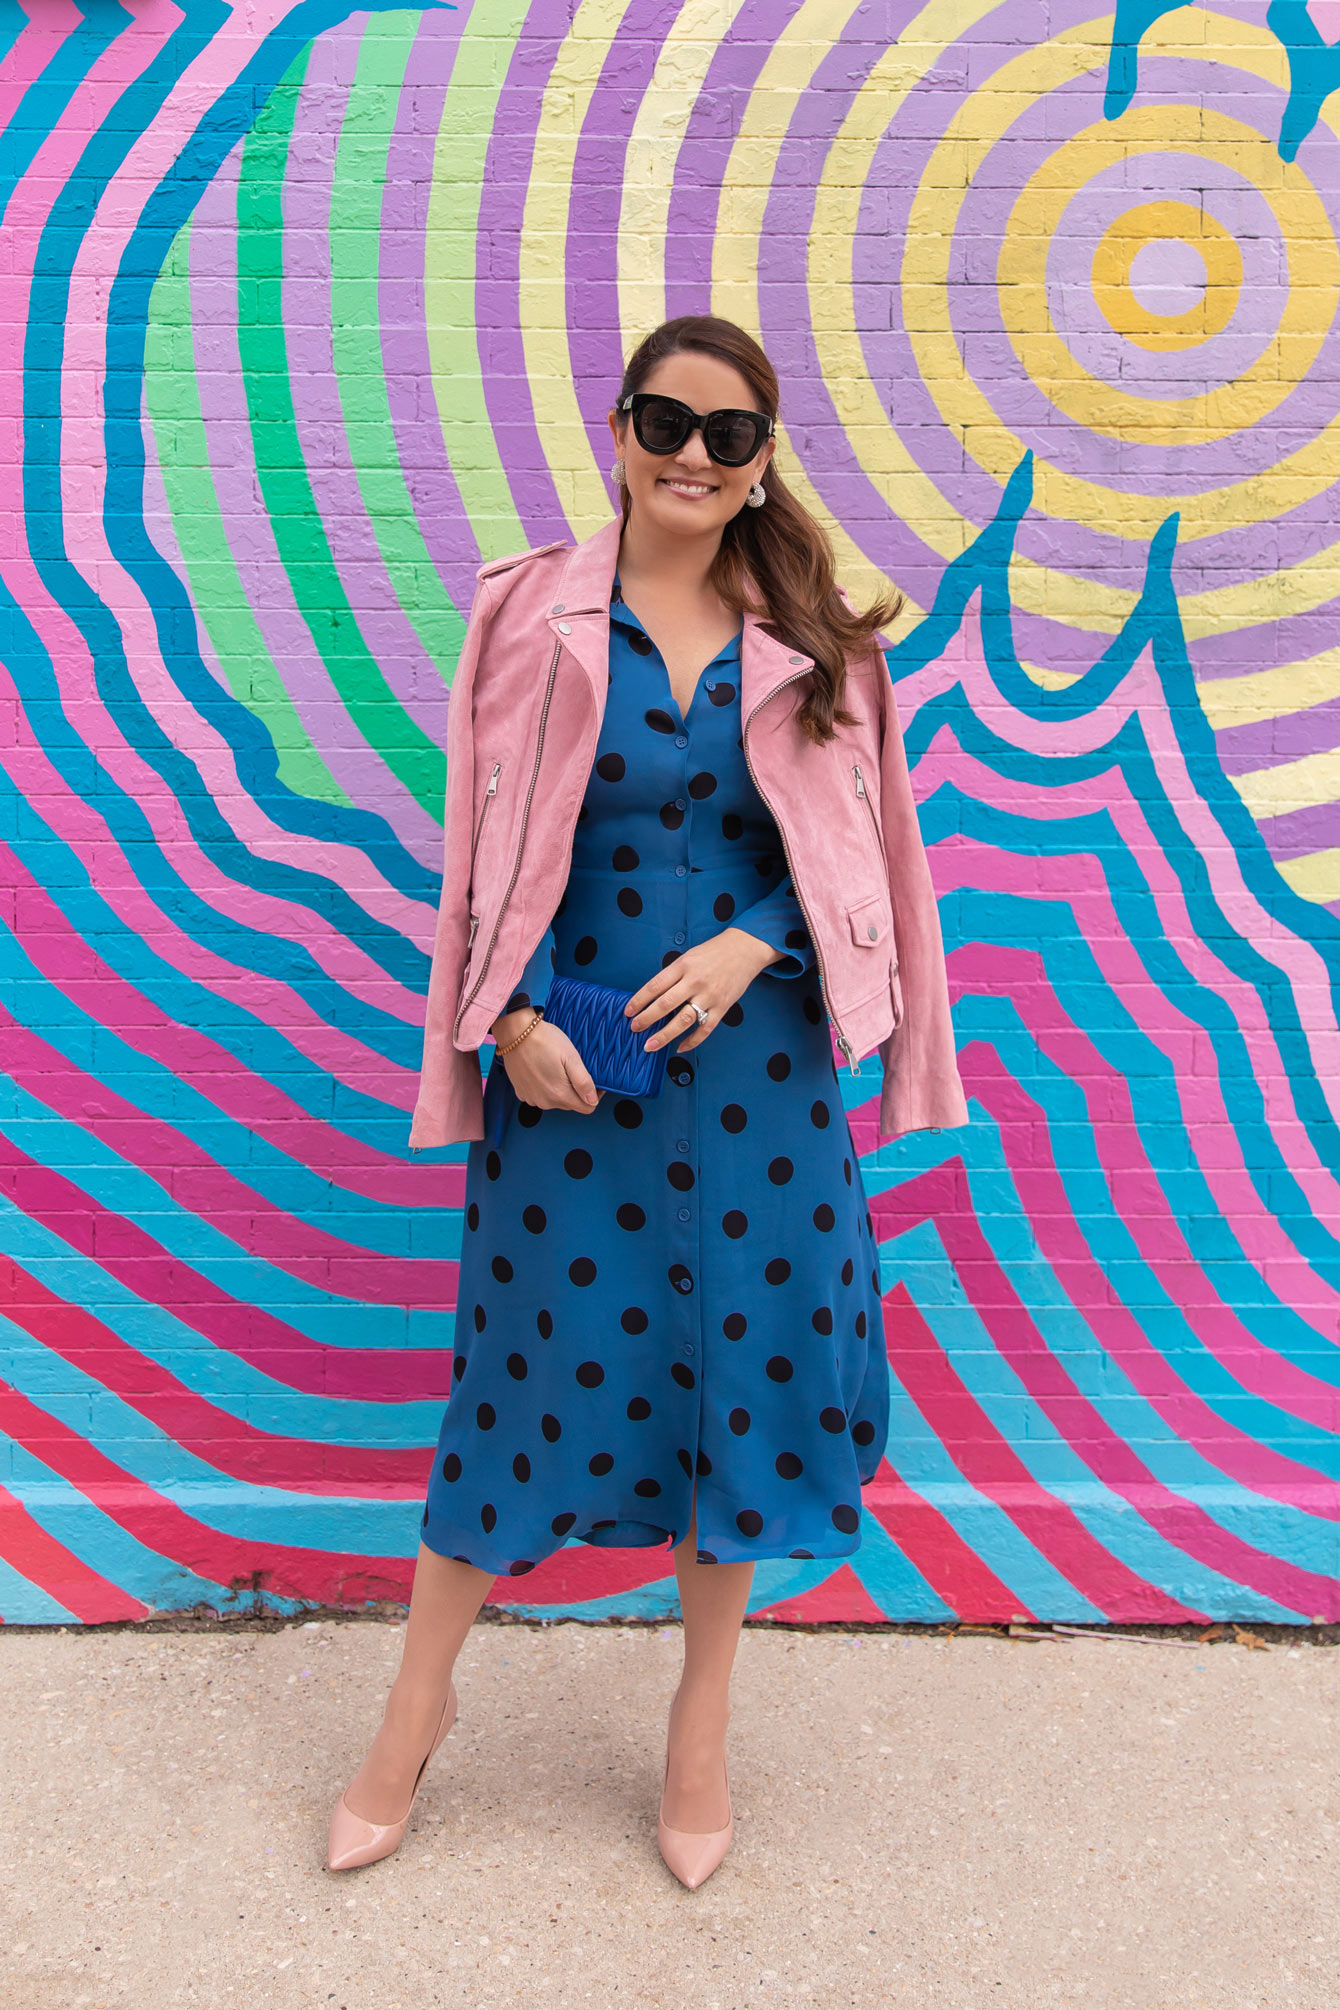 Reformation Polka Dot Shirtdress